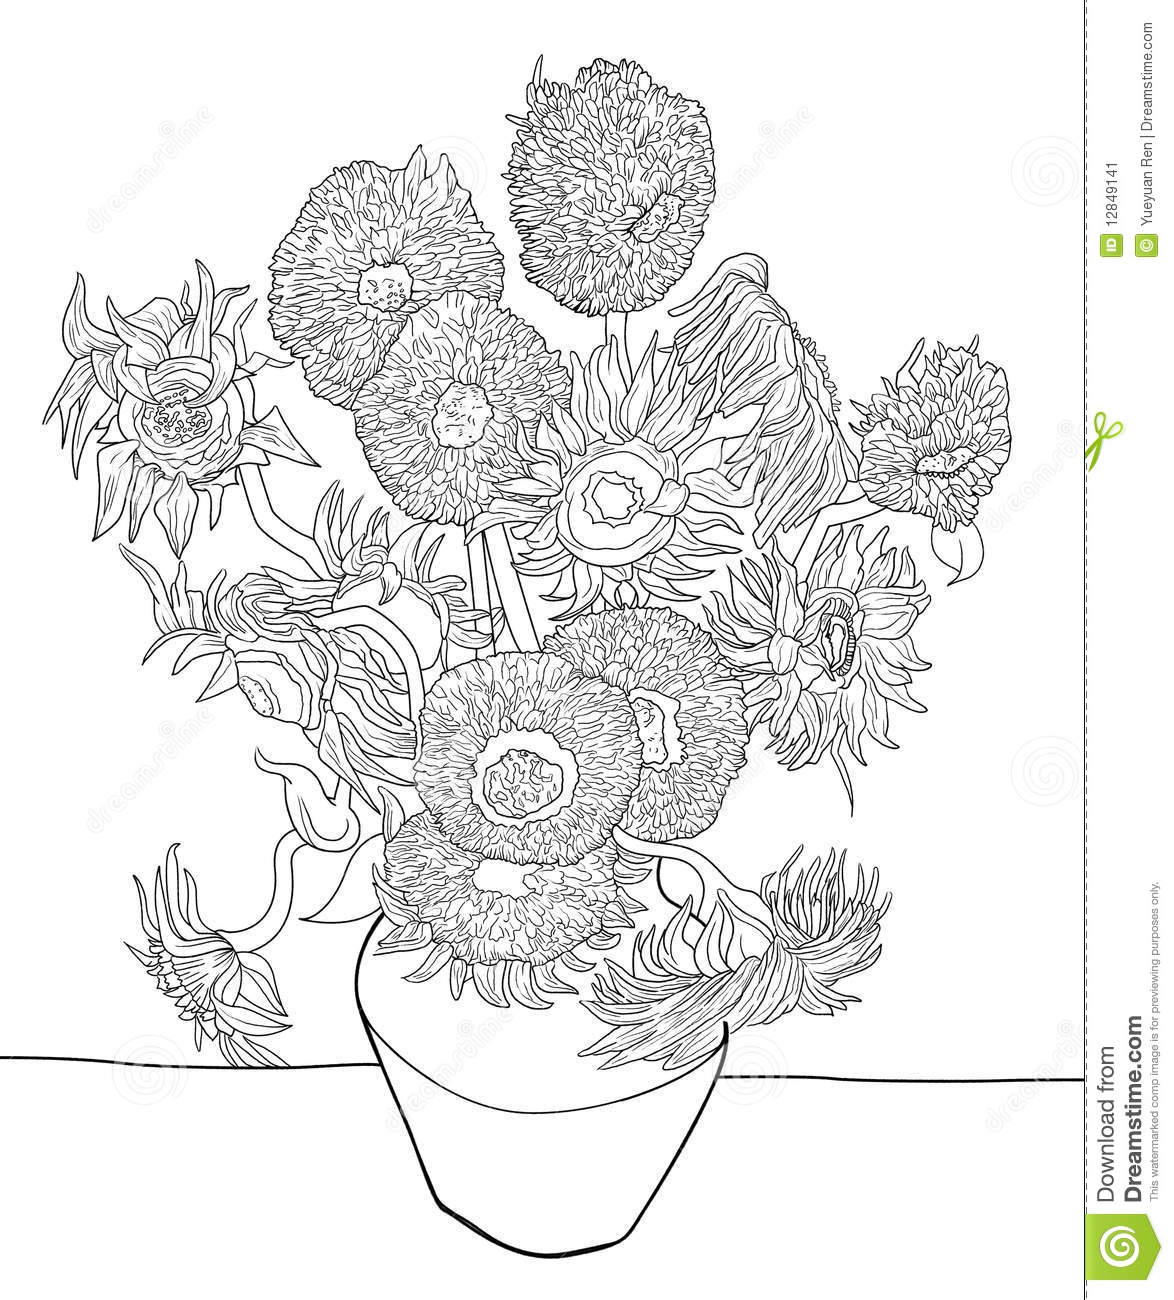 coloring book national sunflower association home tagssunflowers by vincent van gogh coloring page